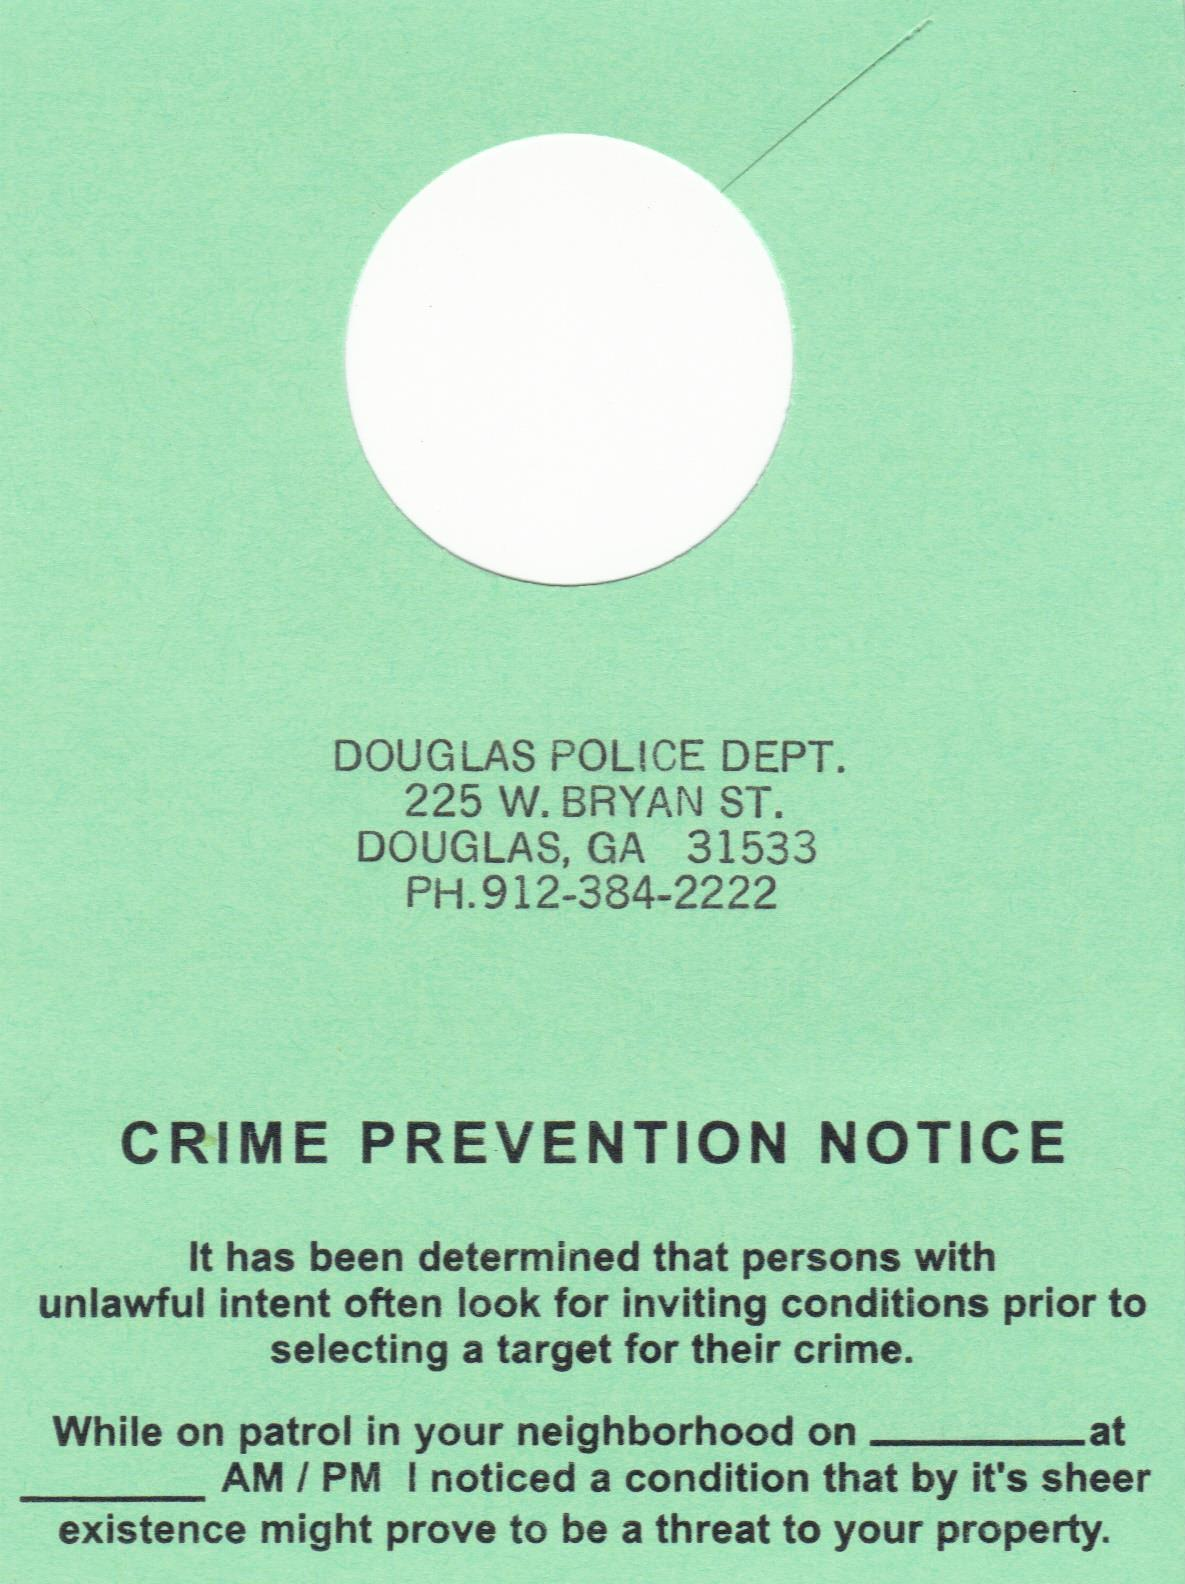 Crime Prevention Notice.jpg